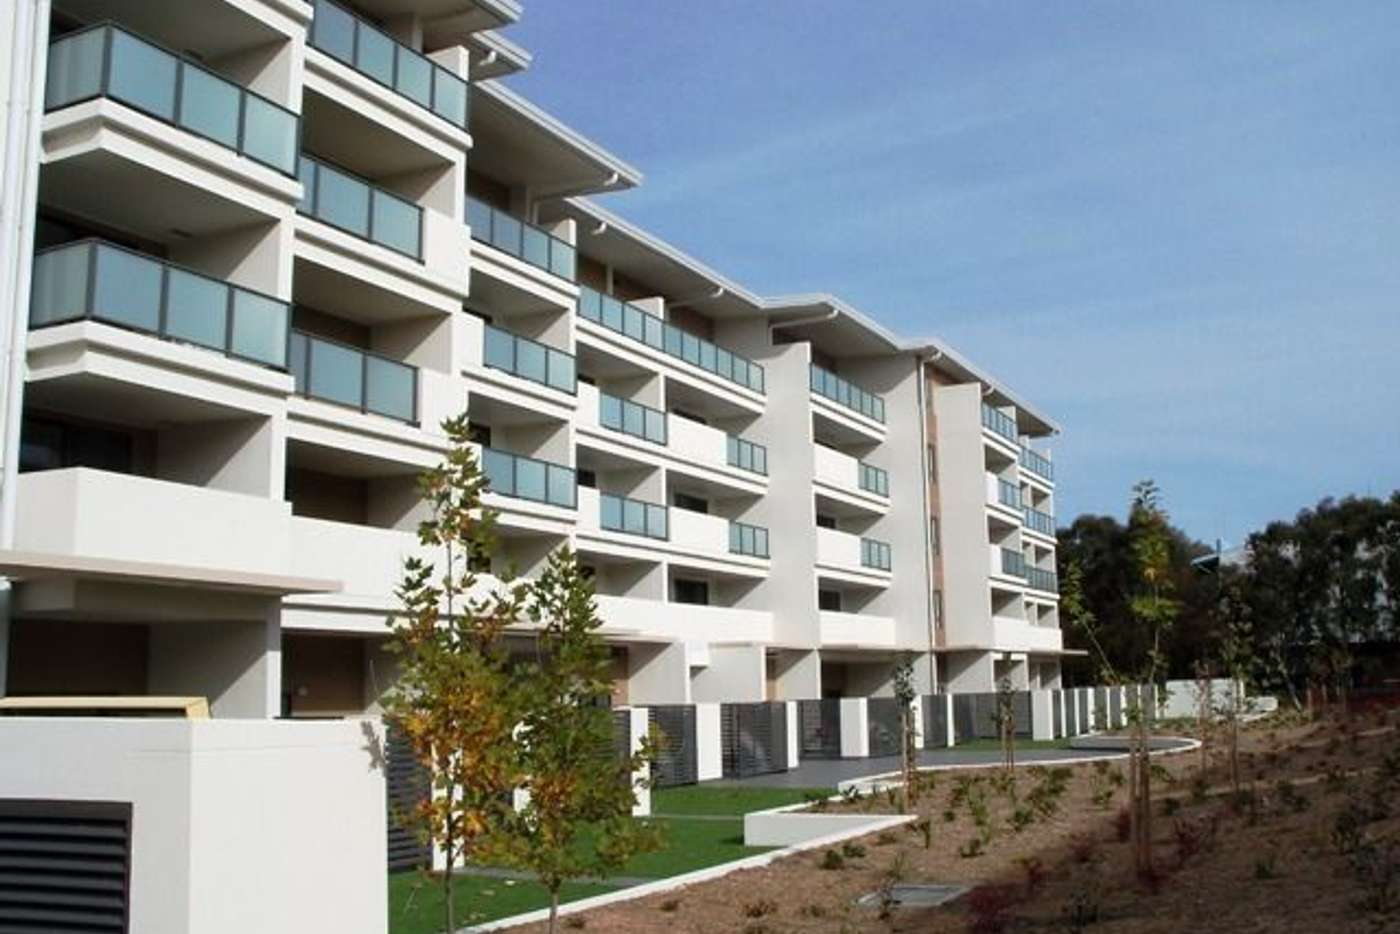 Main view of Homely apartment listing, 39/15 Braybrooke Street, Bruce ACT 2617